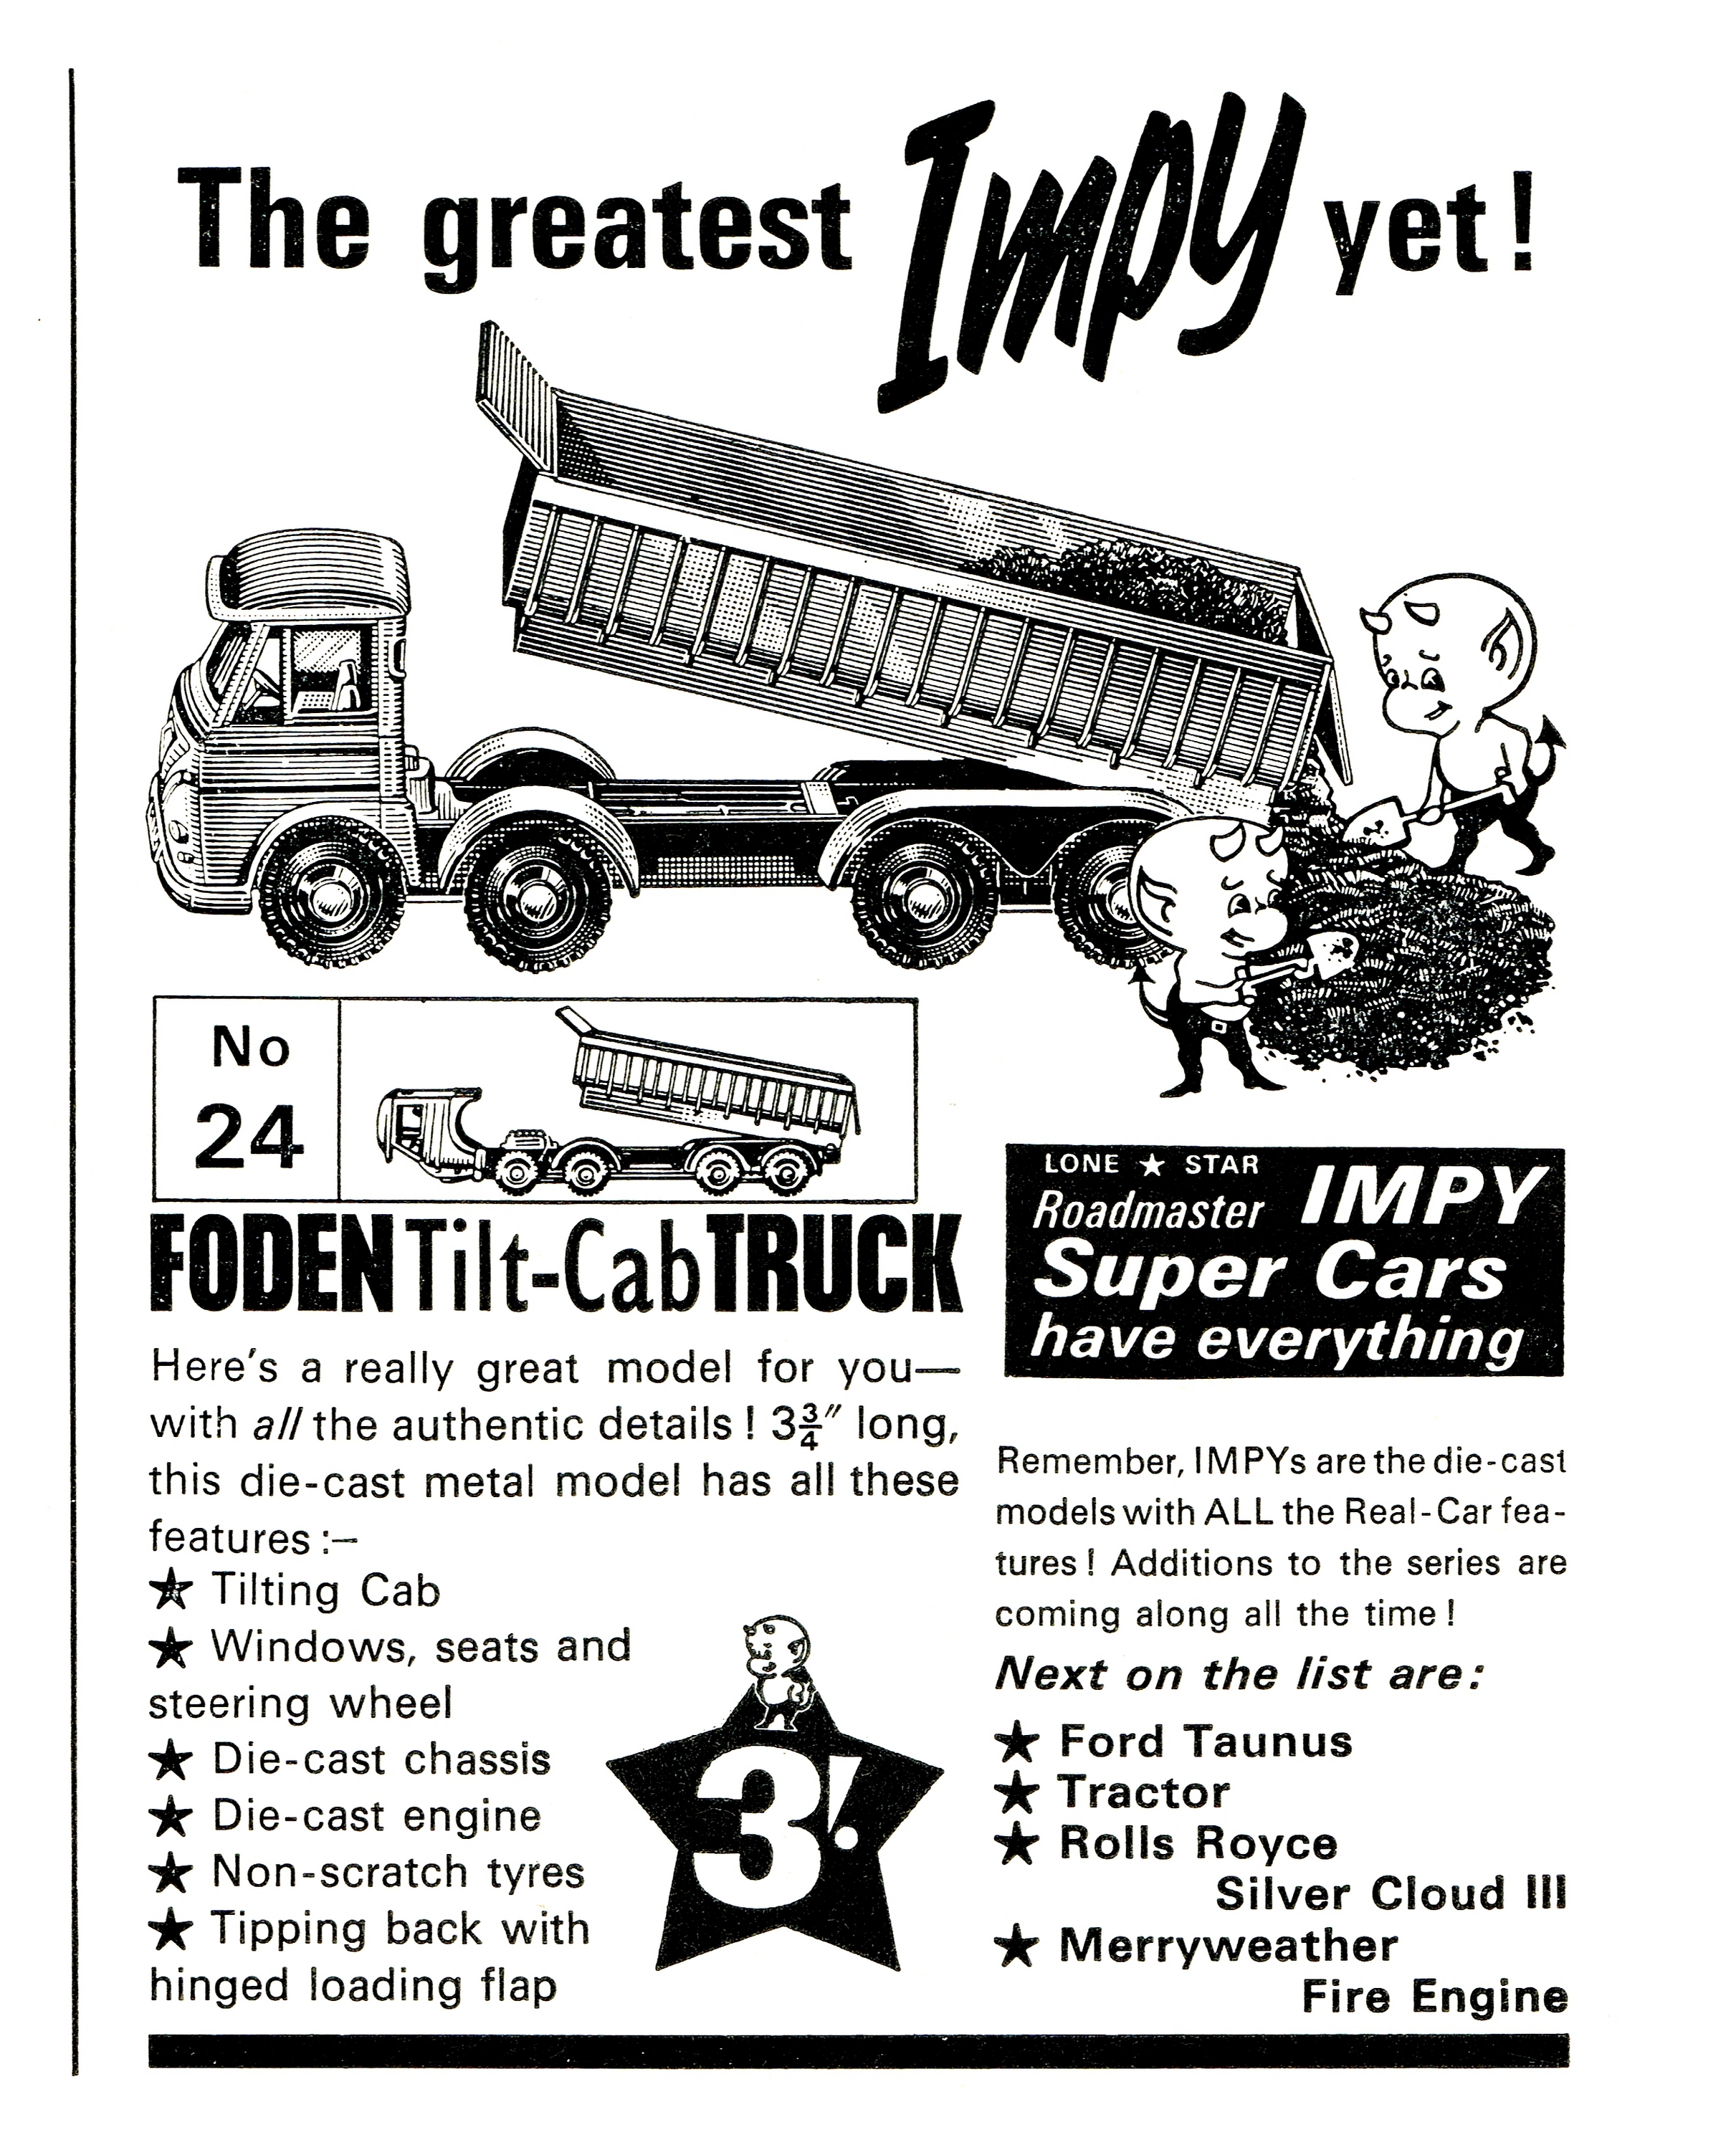 Impy Toys / Lone Star Roadmaster Impy Super Cars (1960s-)